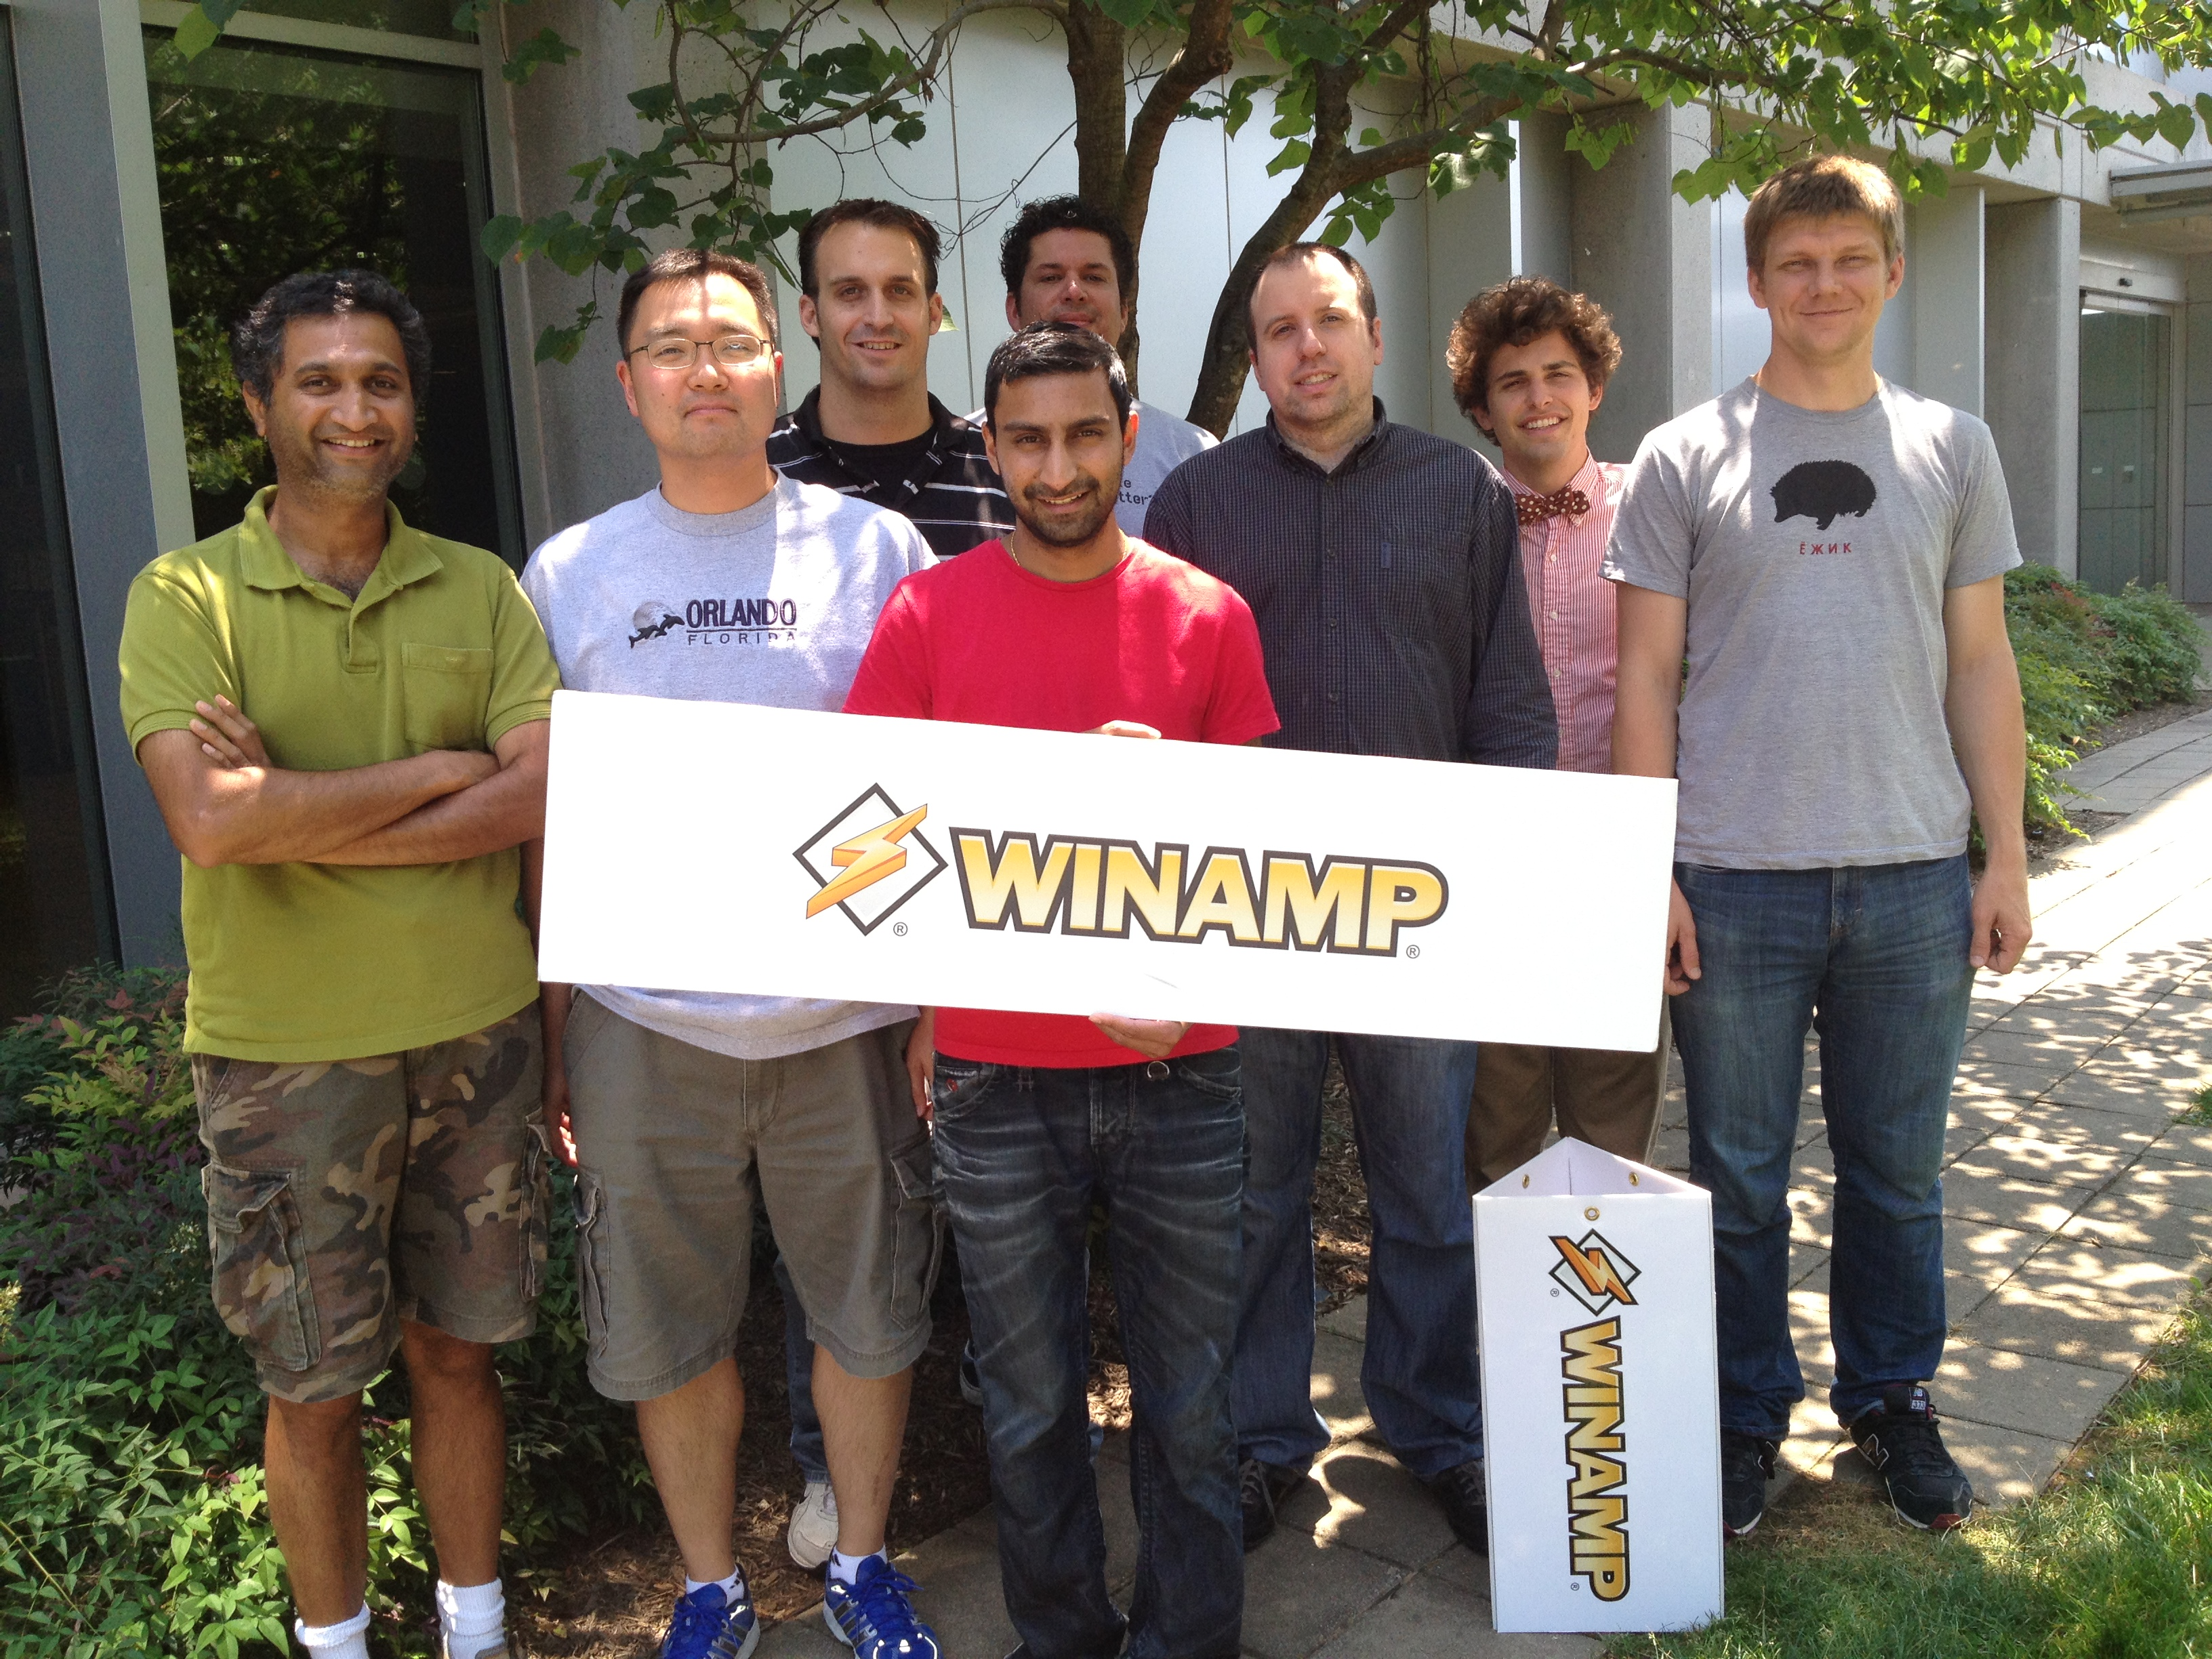 The Dulles-based Winamp team, as of 2012.